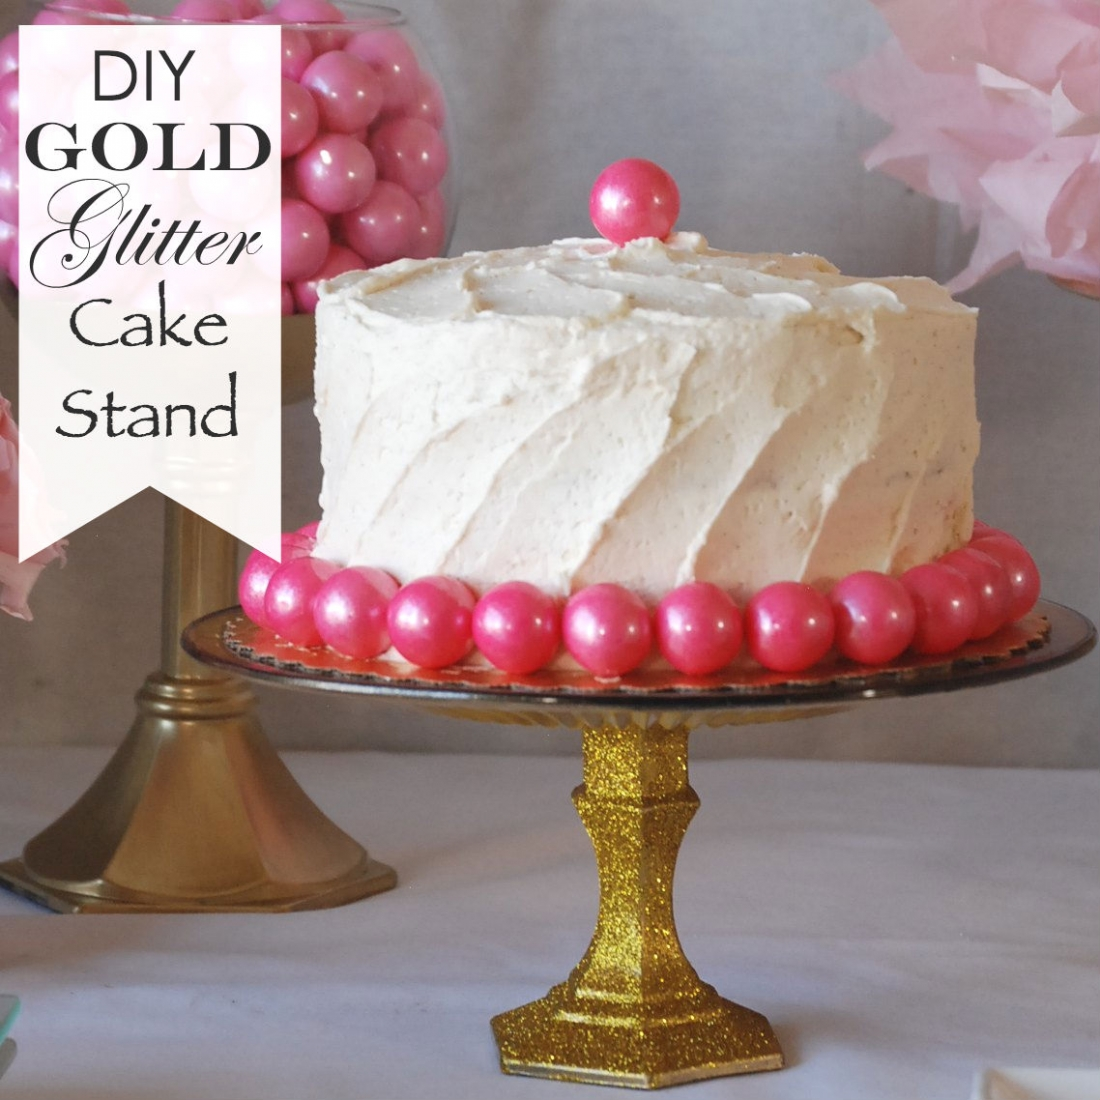 Diy gold glitter cake stand endlessly inspired for How to make a cake stand